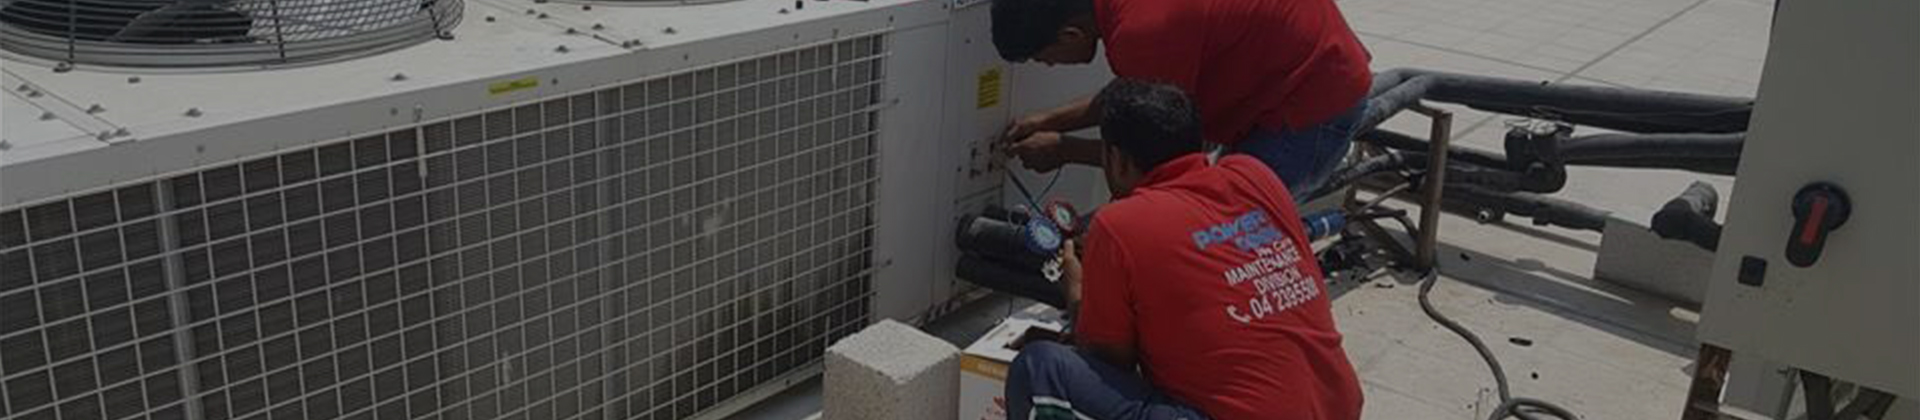 chiller maintenance service dubai